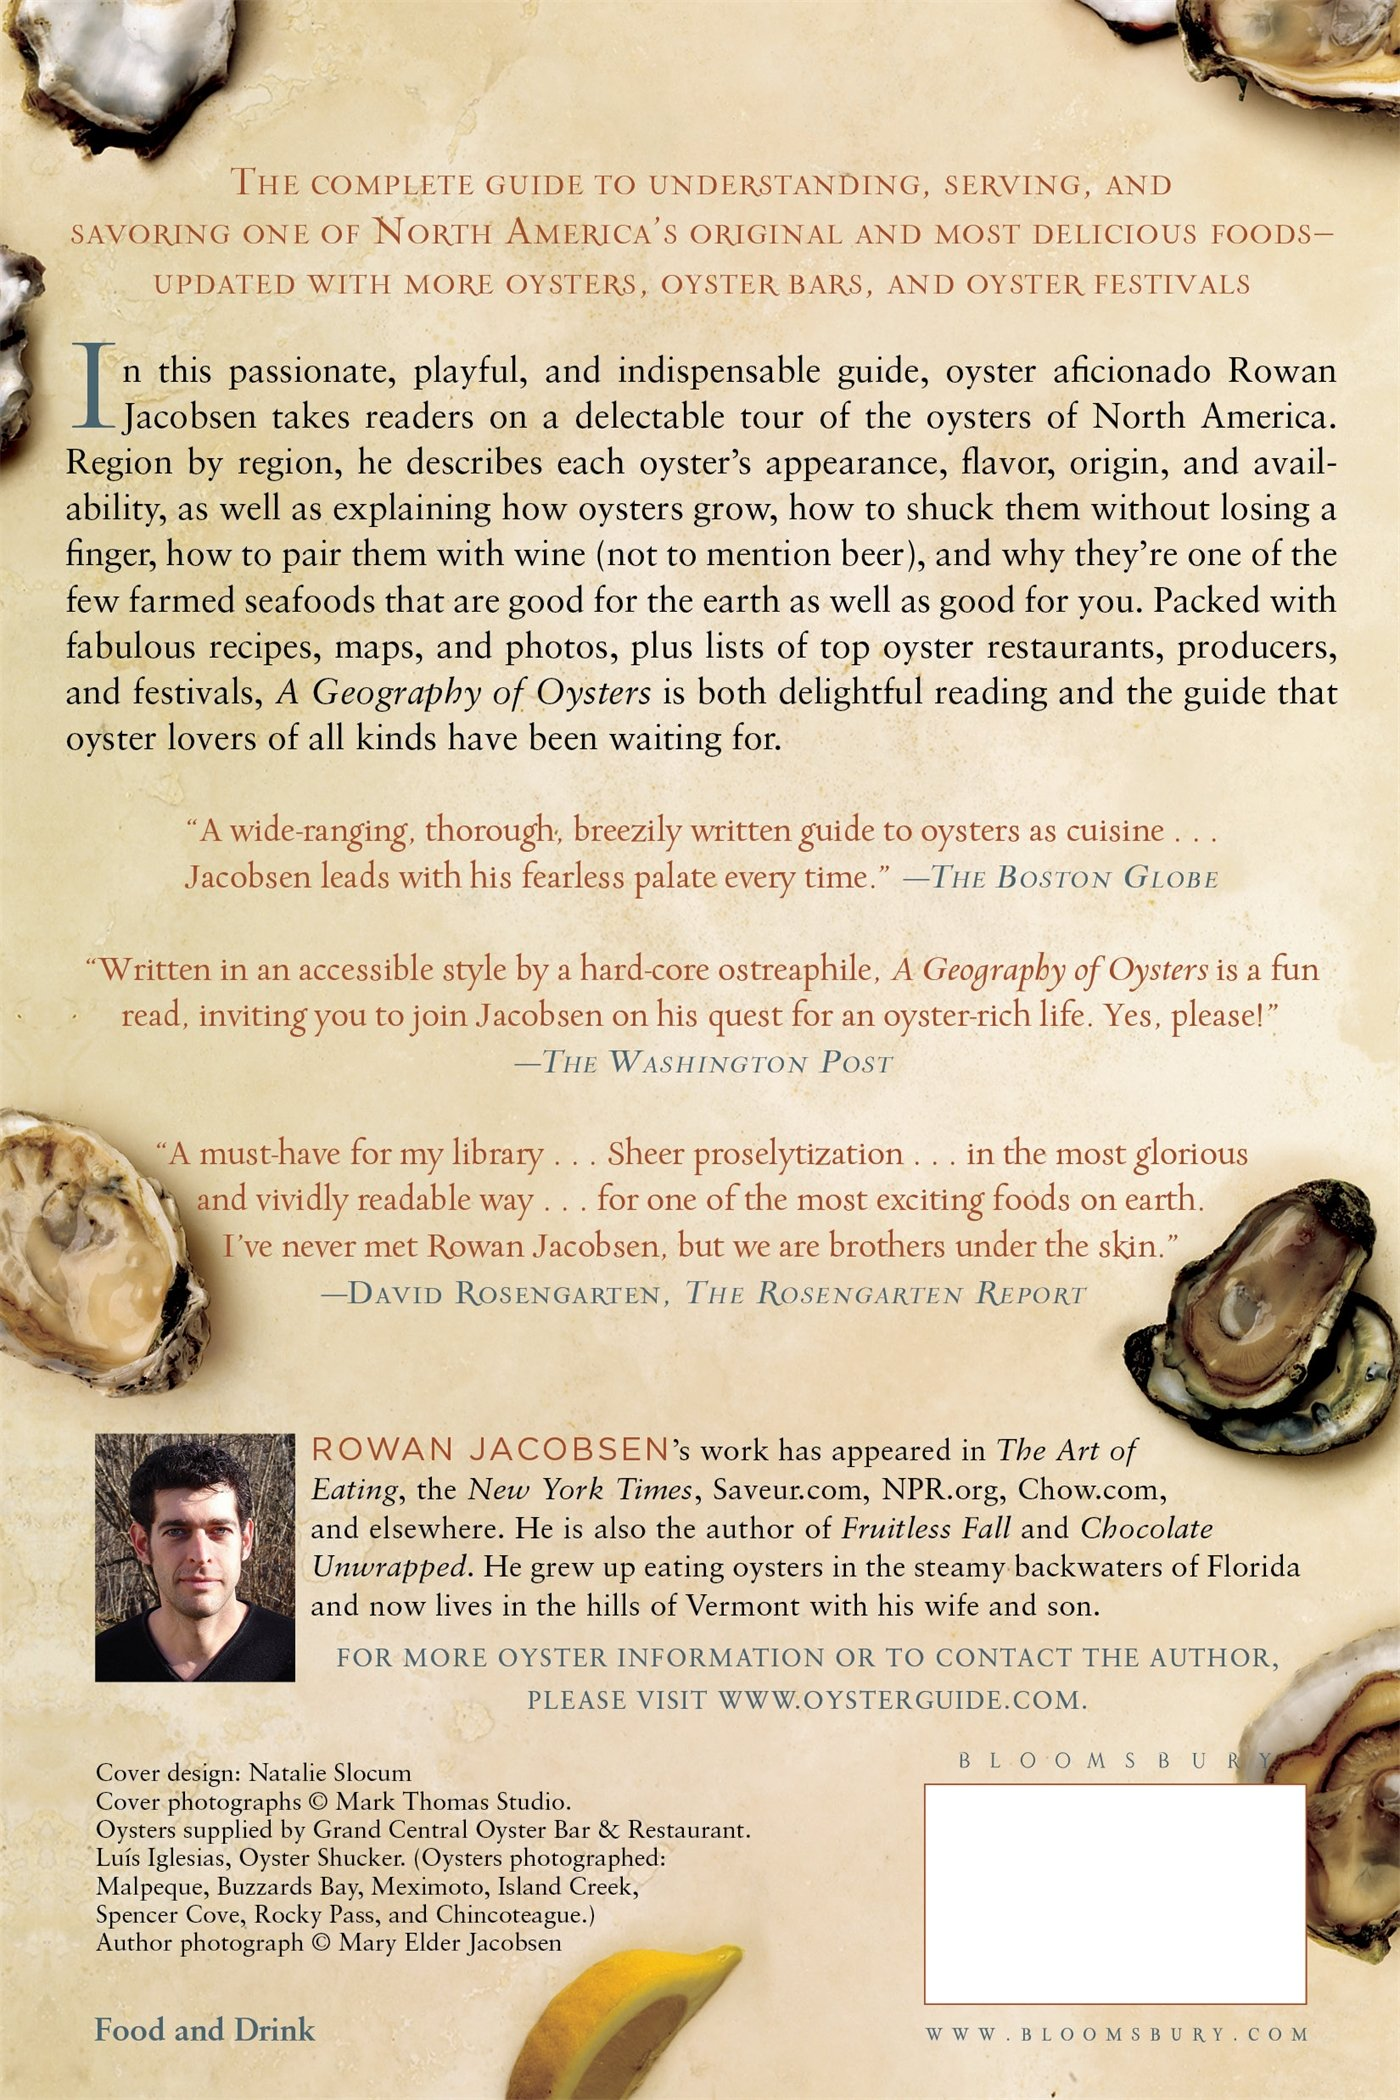 A Geography of Oysters: The Connoisseur's Guide to Oyster Eating in North  America: Rowan Jacobsen: 9781596915480: Amazon.com: Books